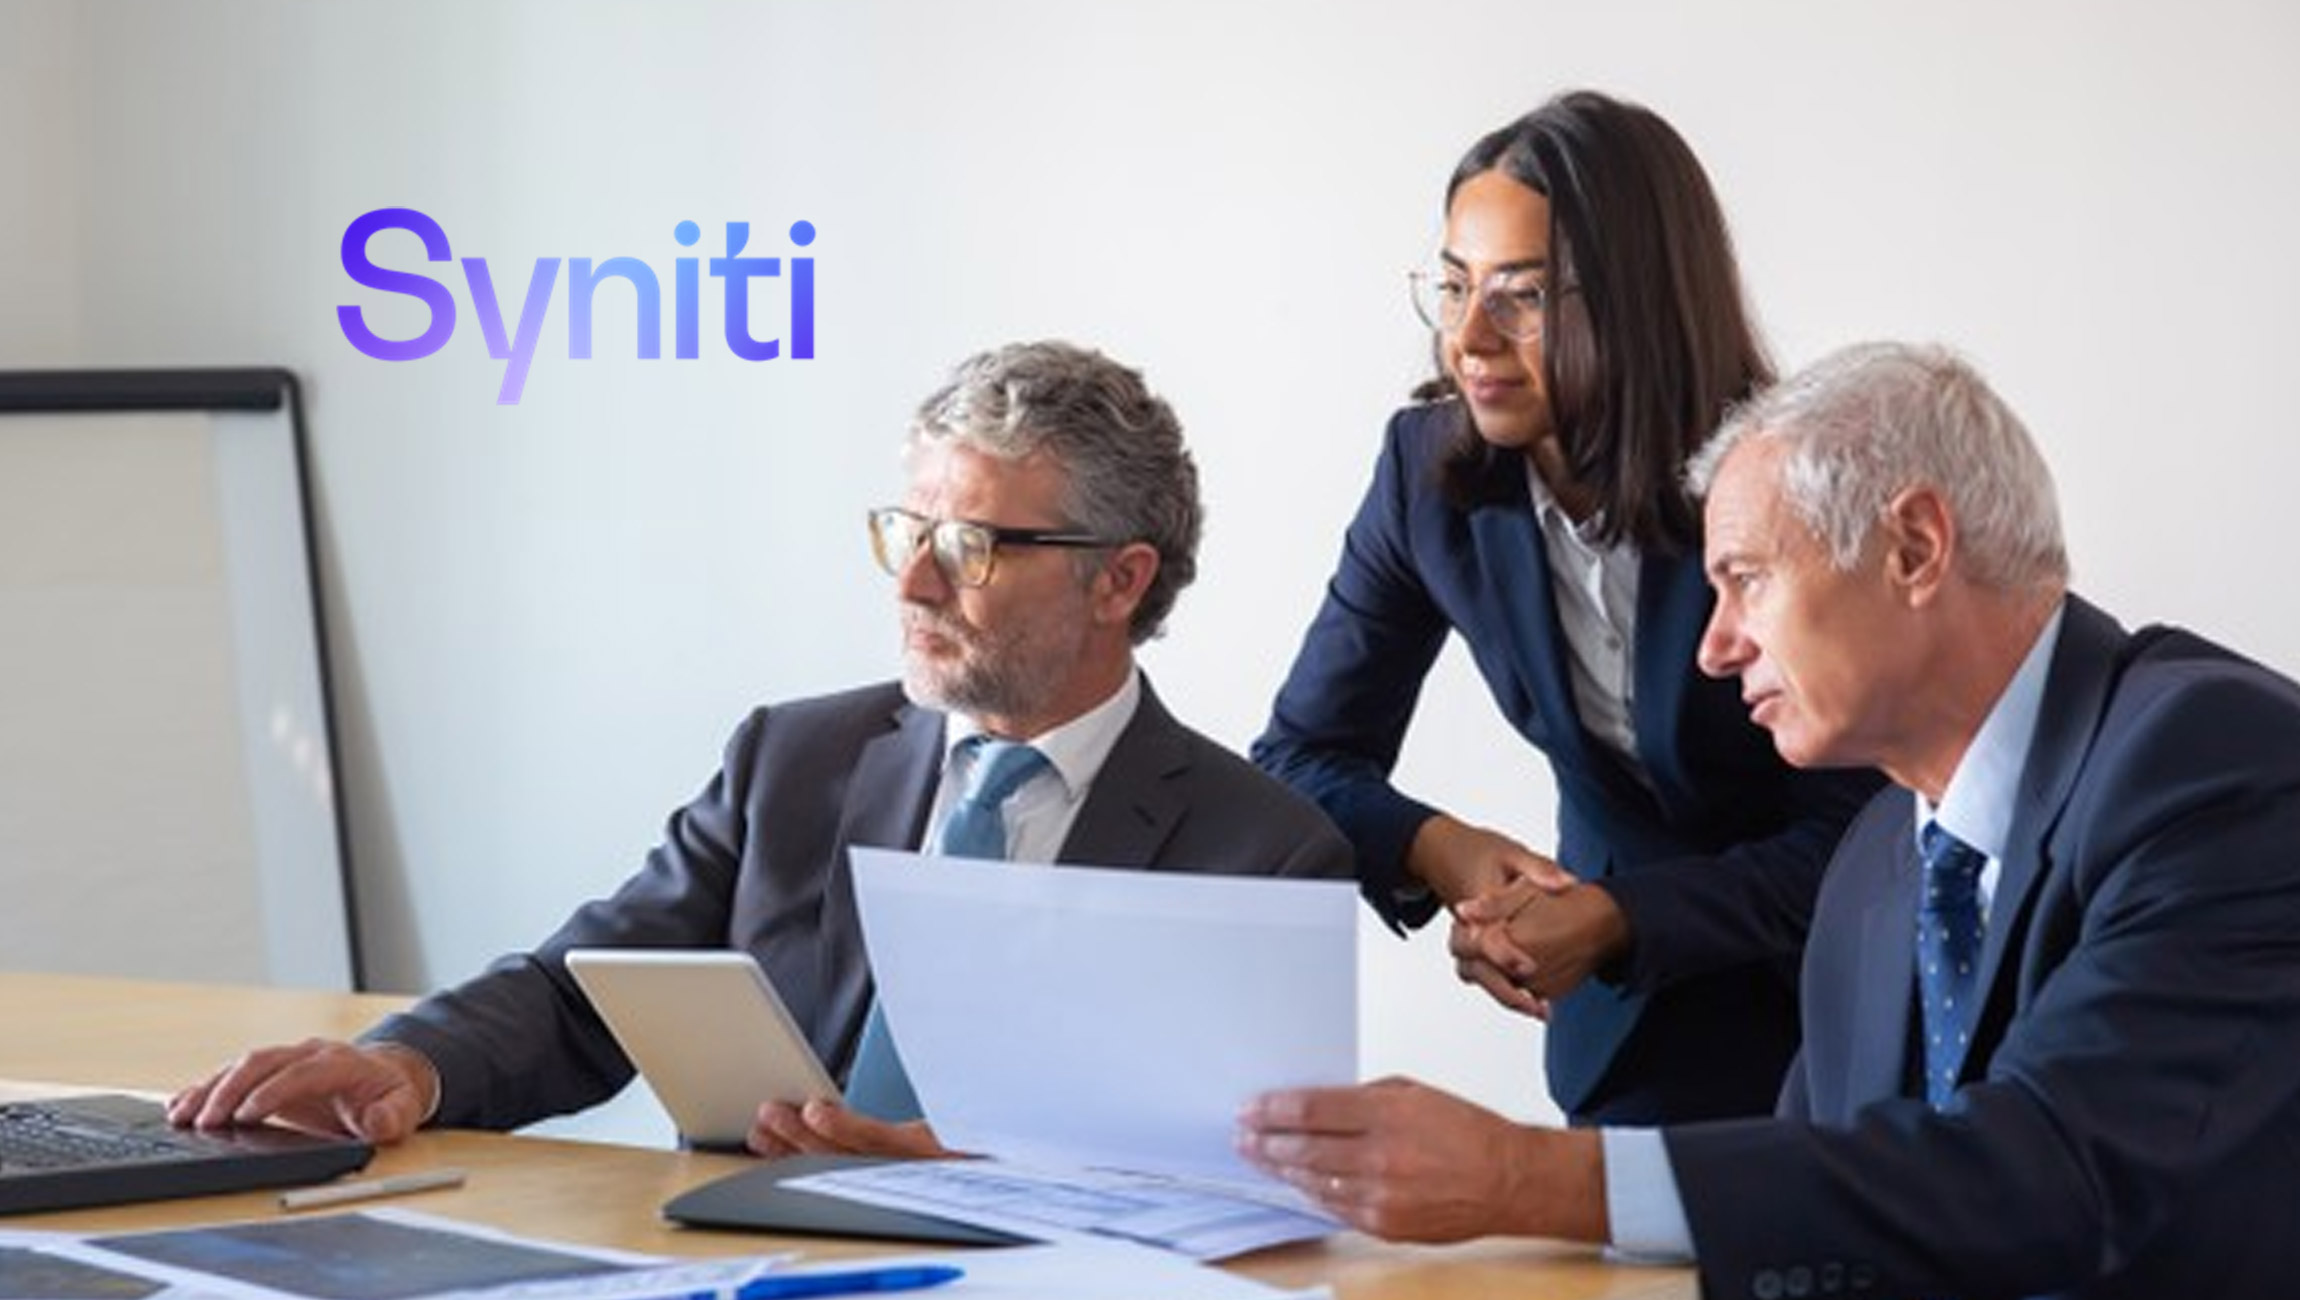 Syniti's New Global Data Value Report Finds that Only 5% of Executives Trust Their Enterprise Data